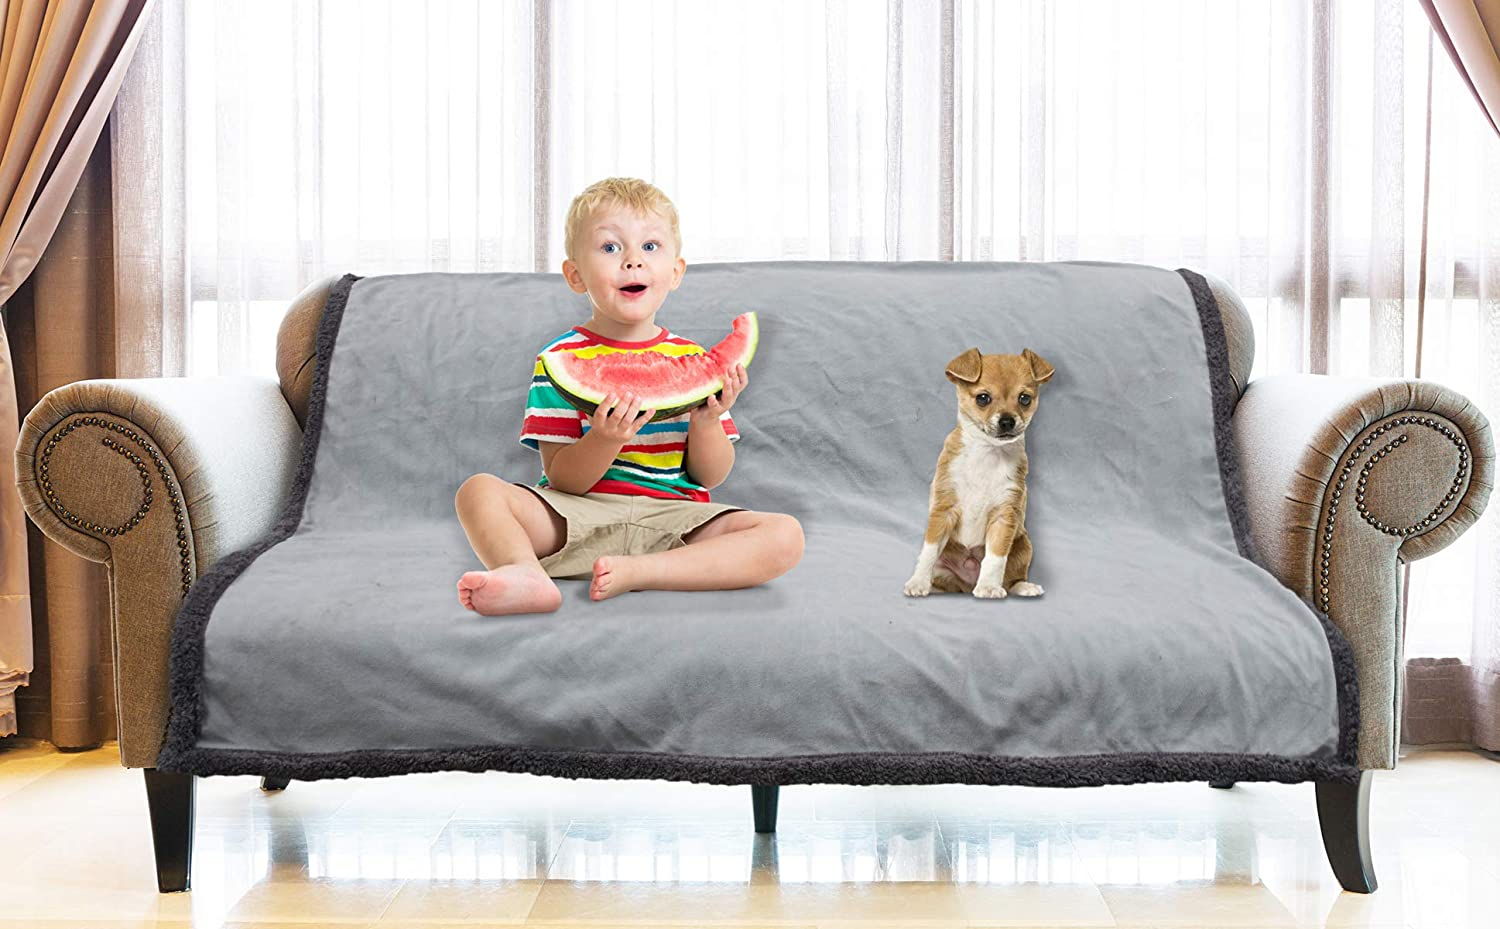 Fantastic Catalonia Waterproof Blanket Liquid Pee Proof Blanket For Bed Couch Sofa Protector Cover For Baby Cozy Sherpa Lining Throws And Blankets For Camping Pdpeps Interior Chair Design Pdpepsorg